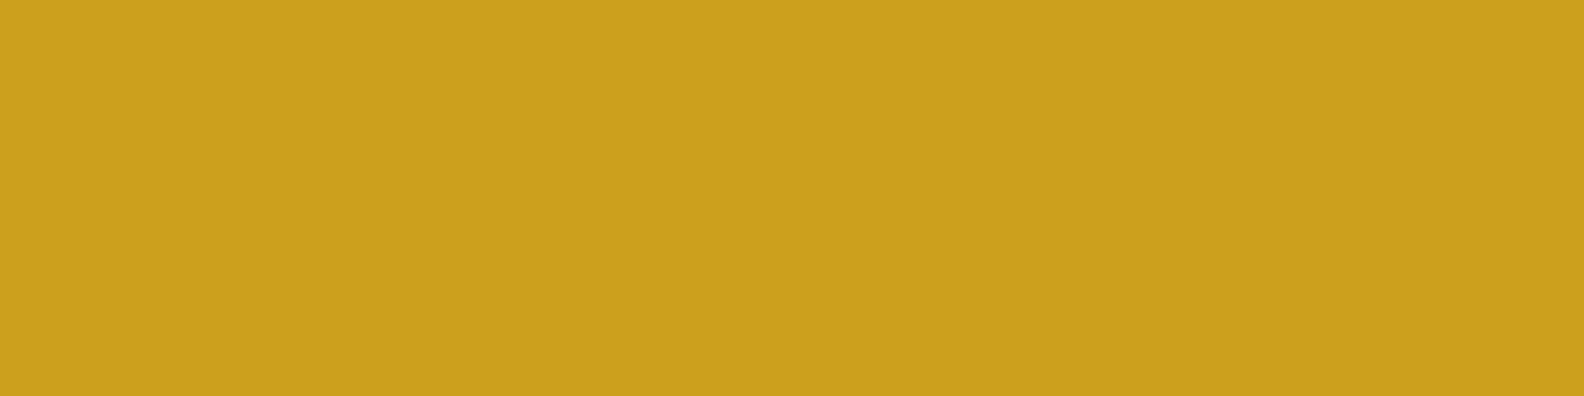 1584x396 Lemon Curry Solid Color Background